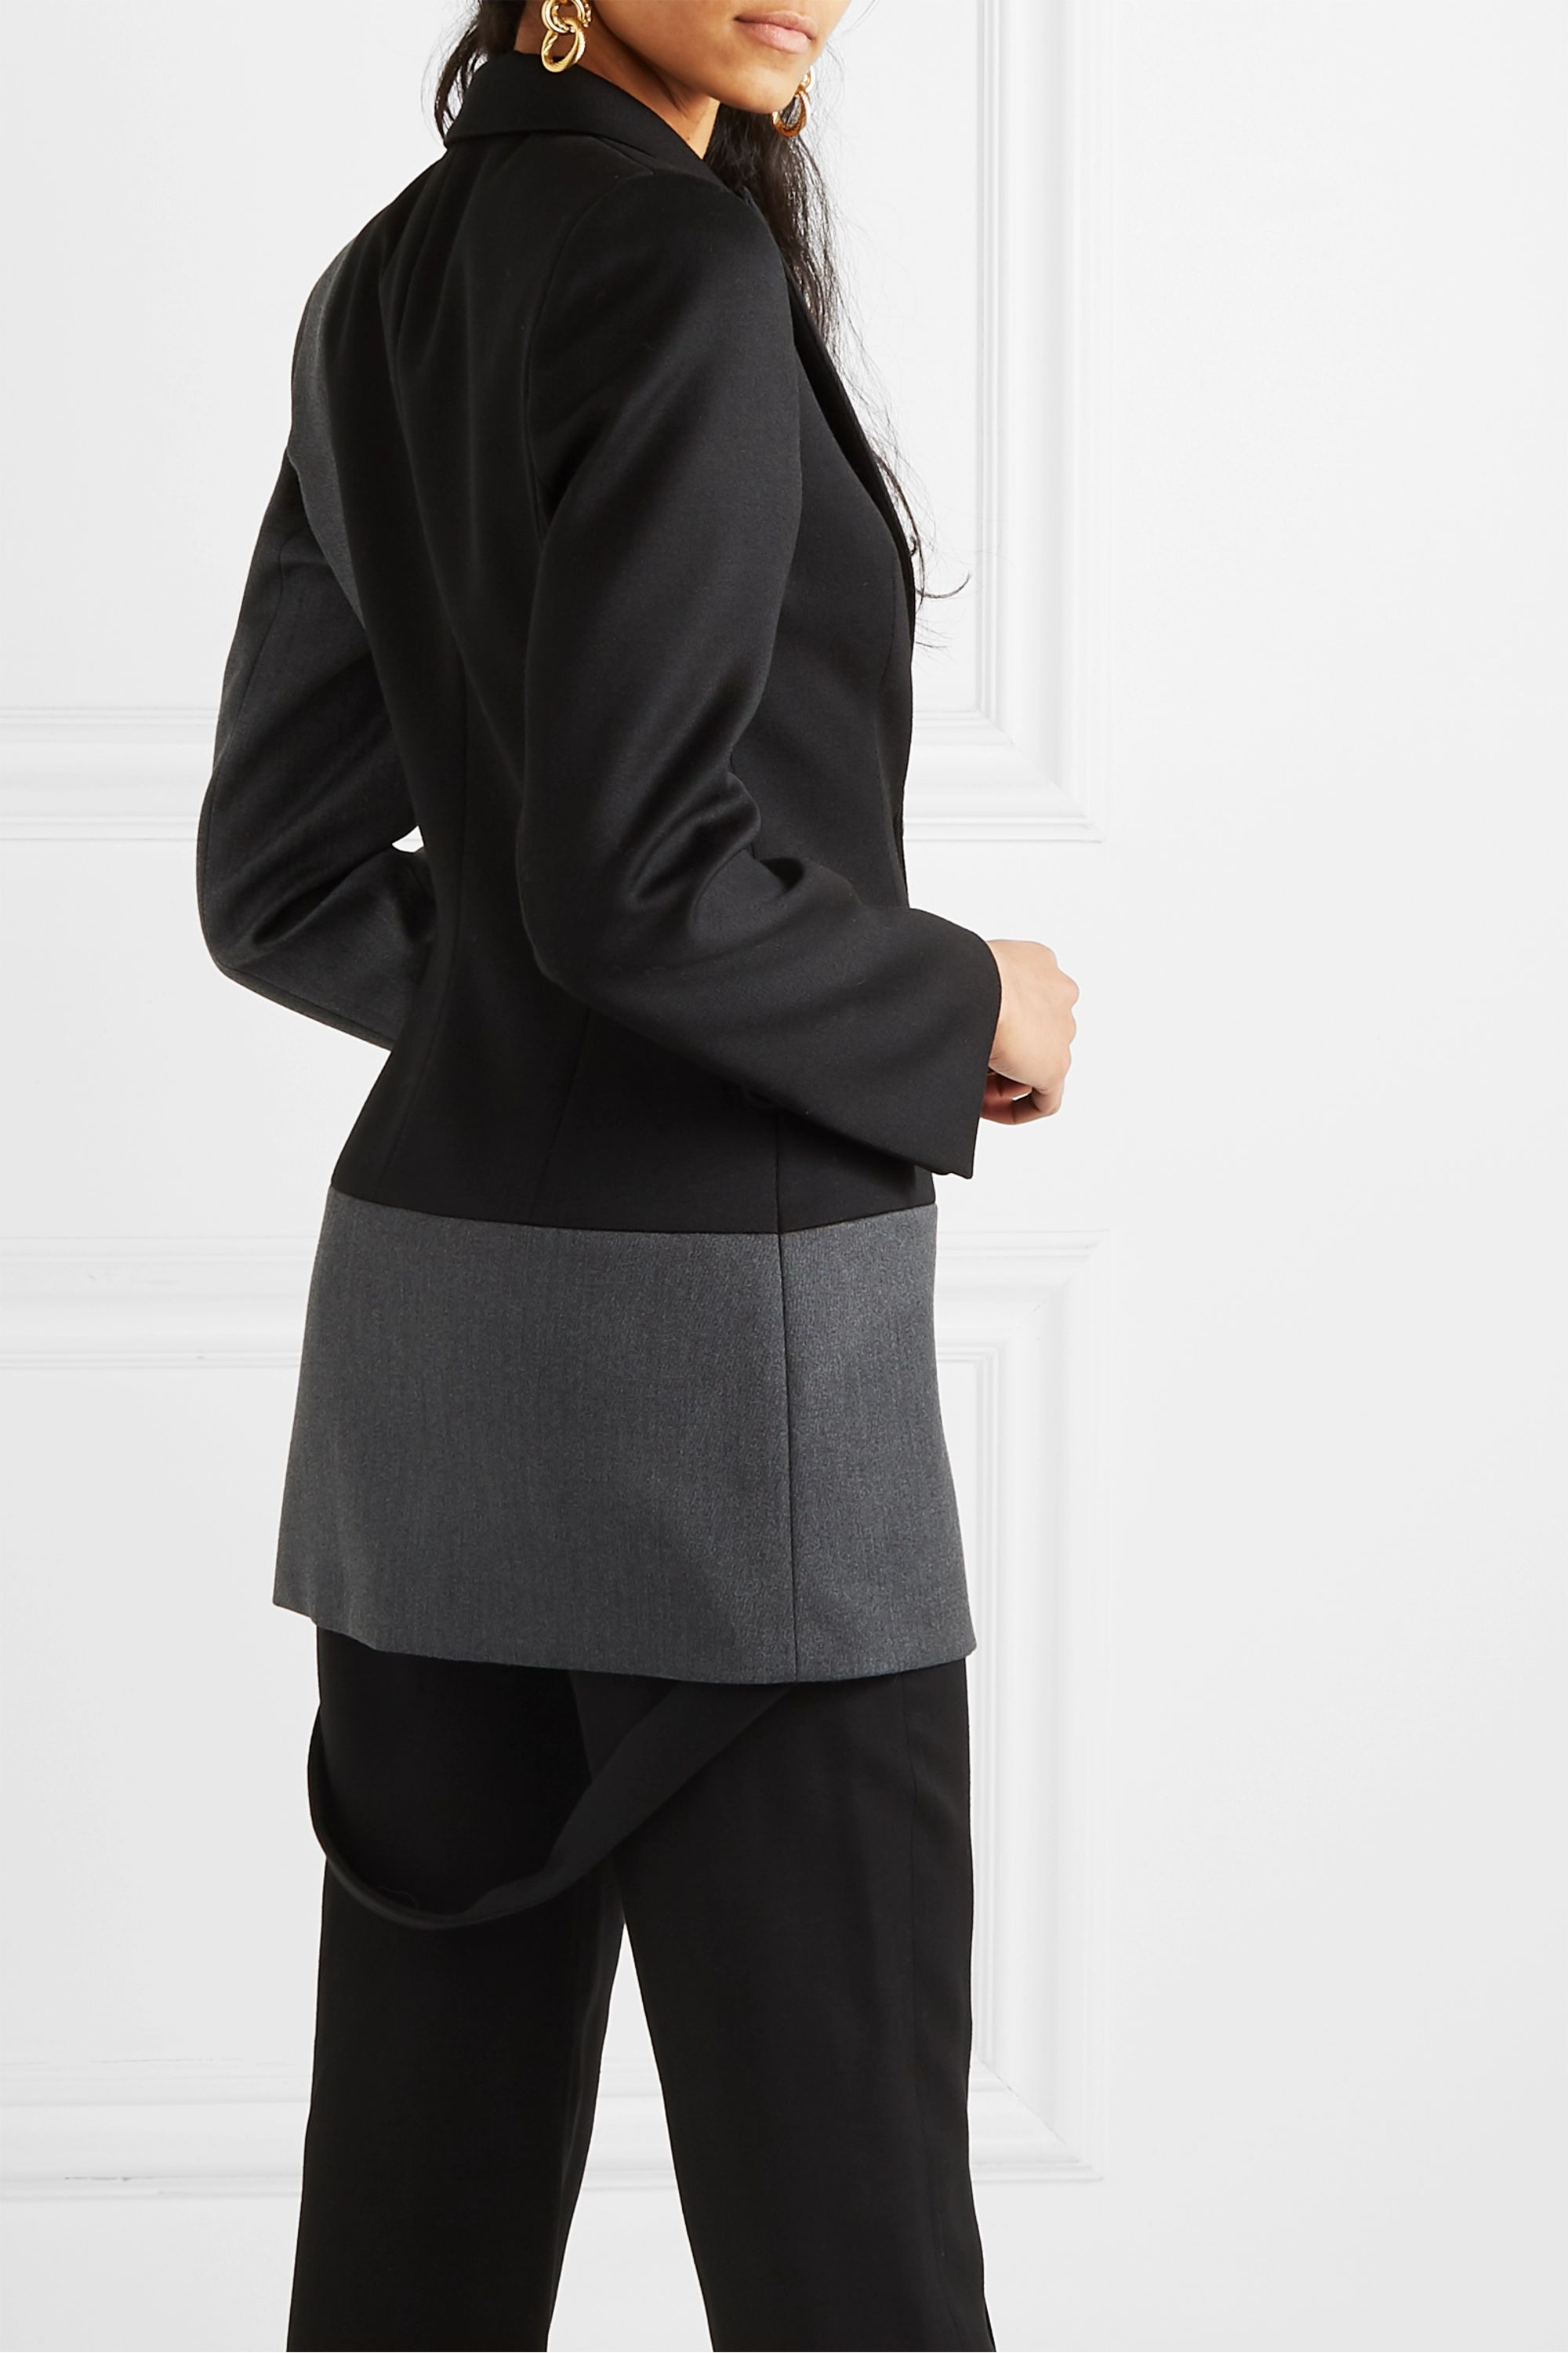 Loewe Two-tone paneled wool-twill blazer